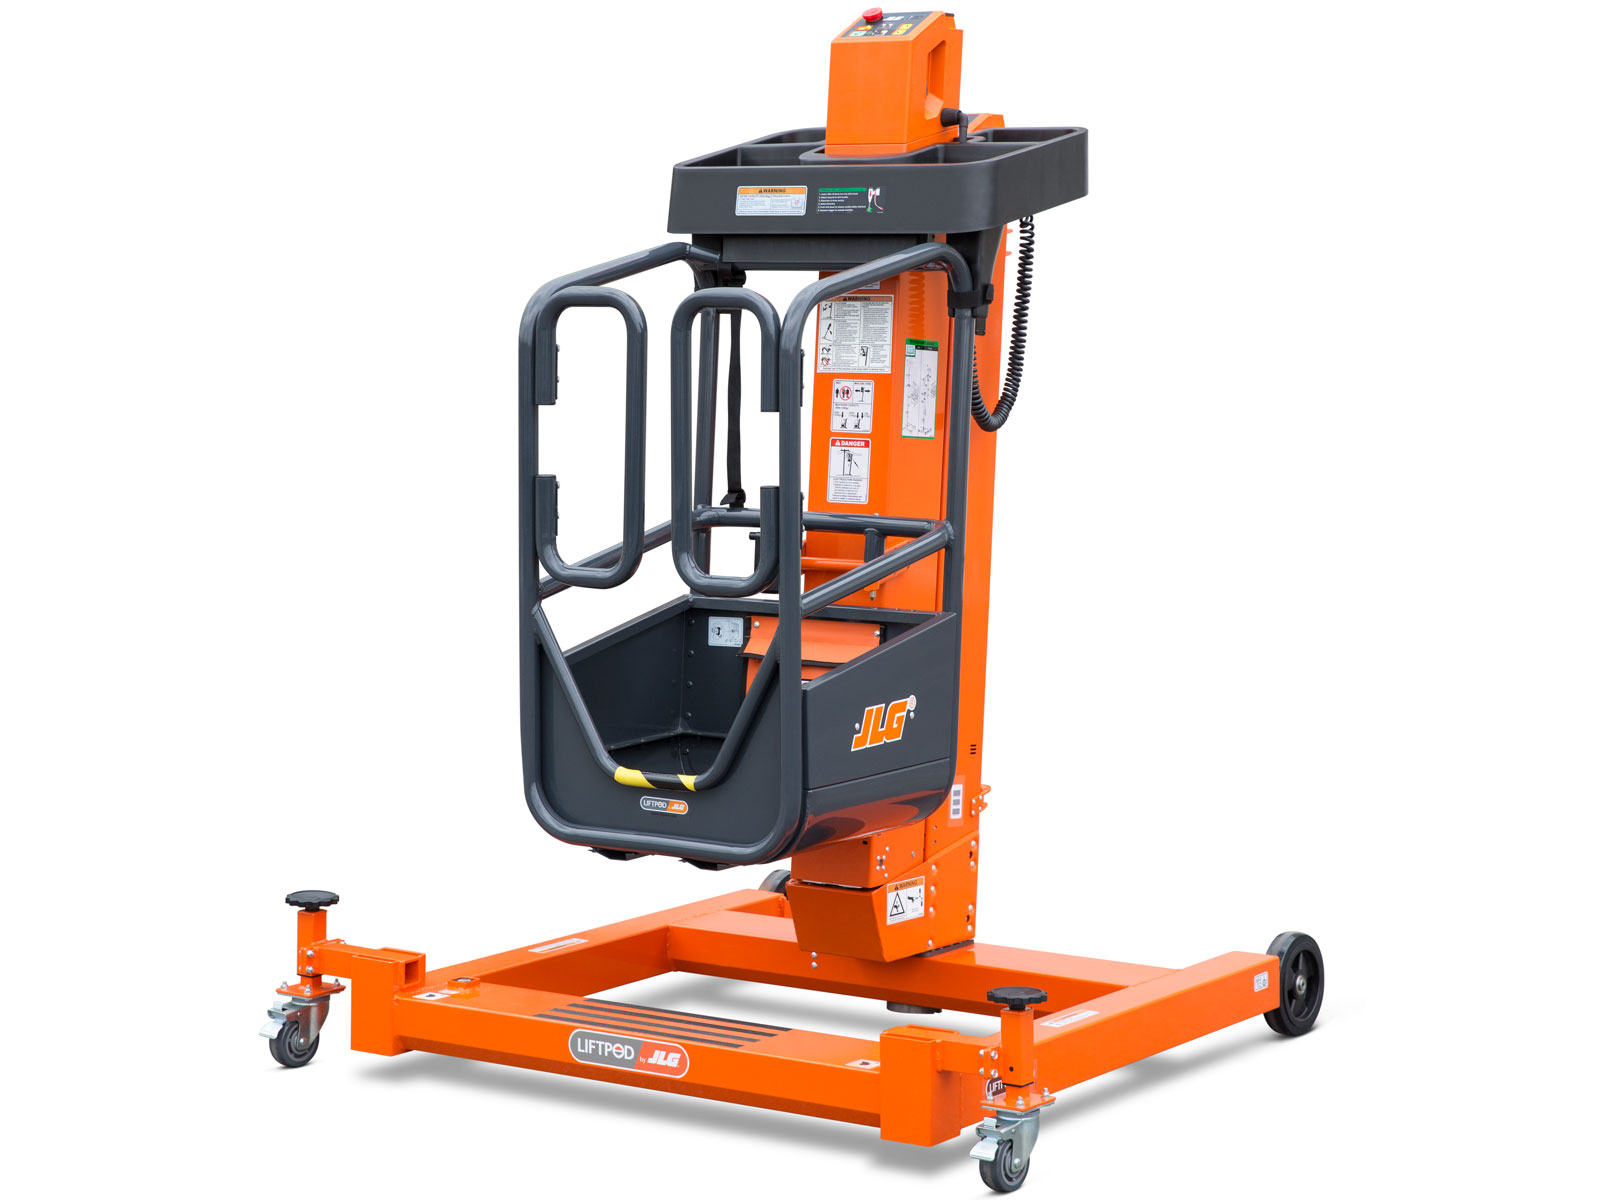 Jlg Single Man Lift Free Download 20mvl Wiring Diagram Liftpod Ft140 Personal Portable Weight At